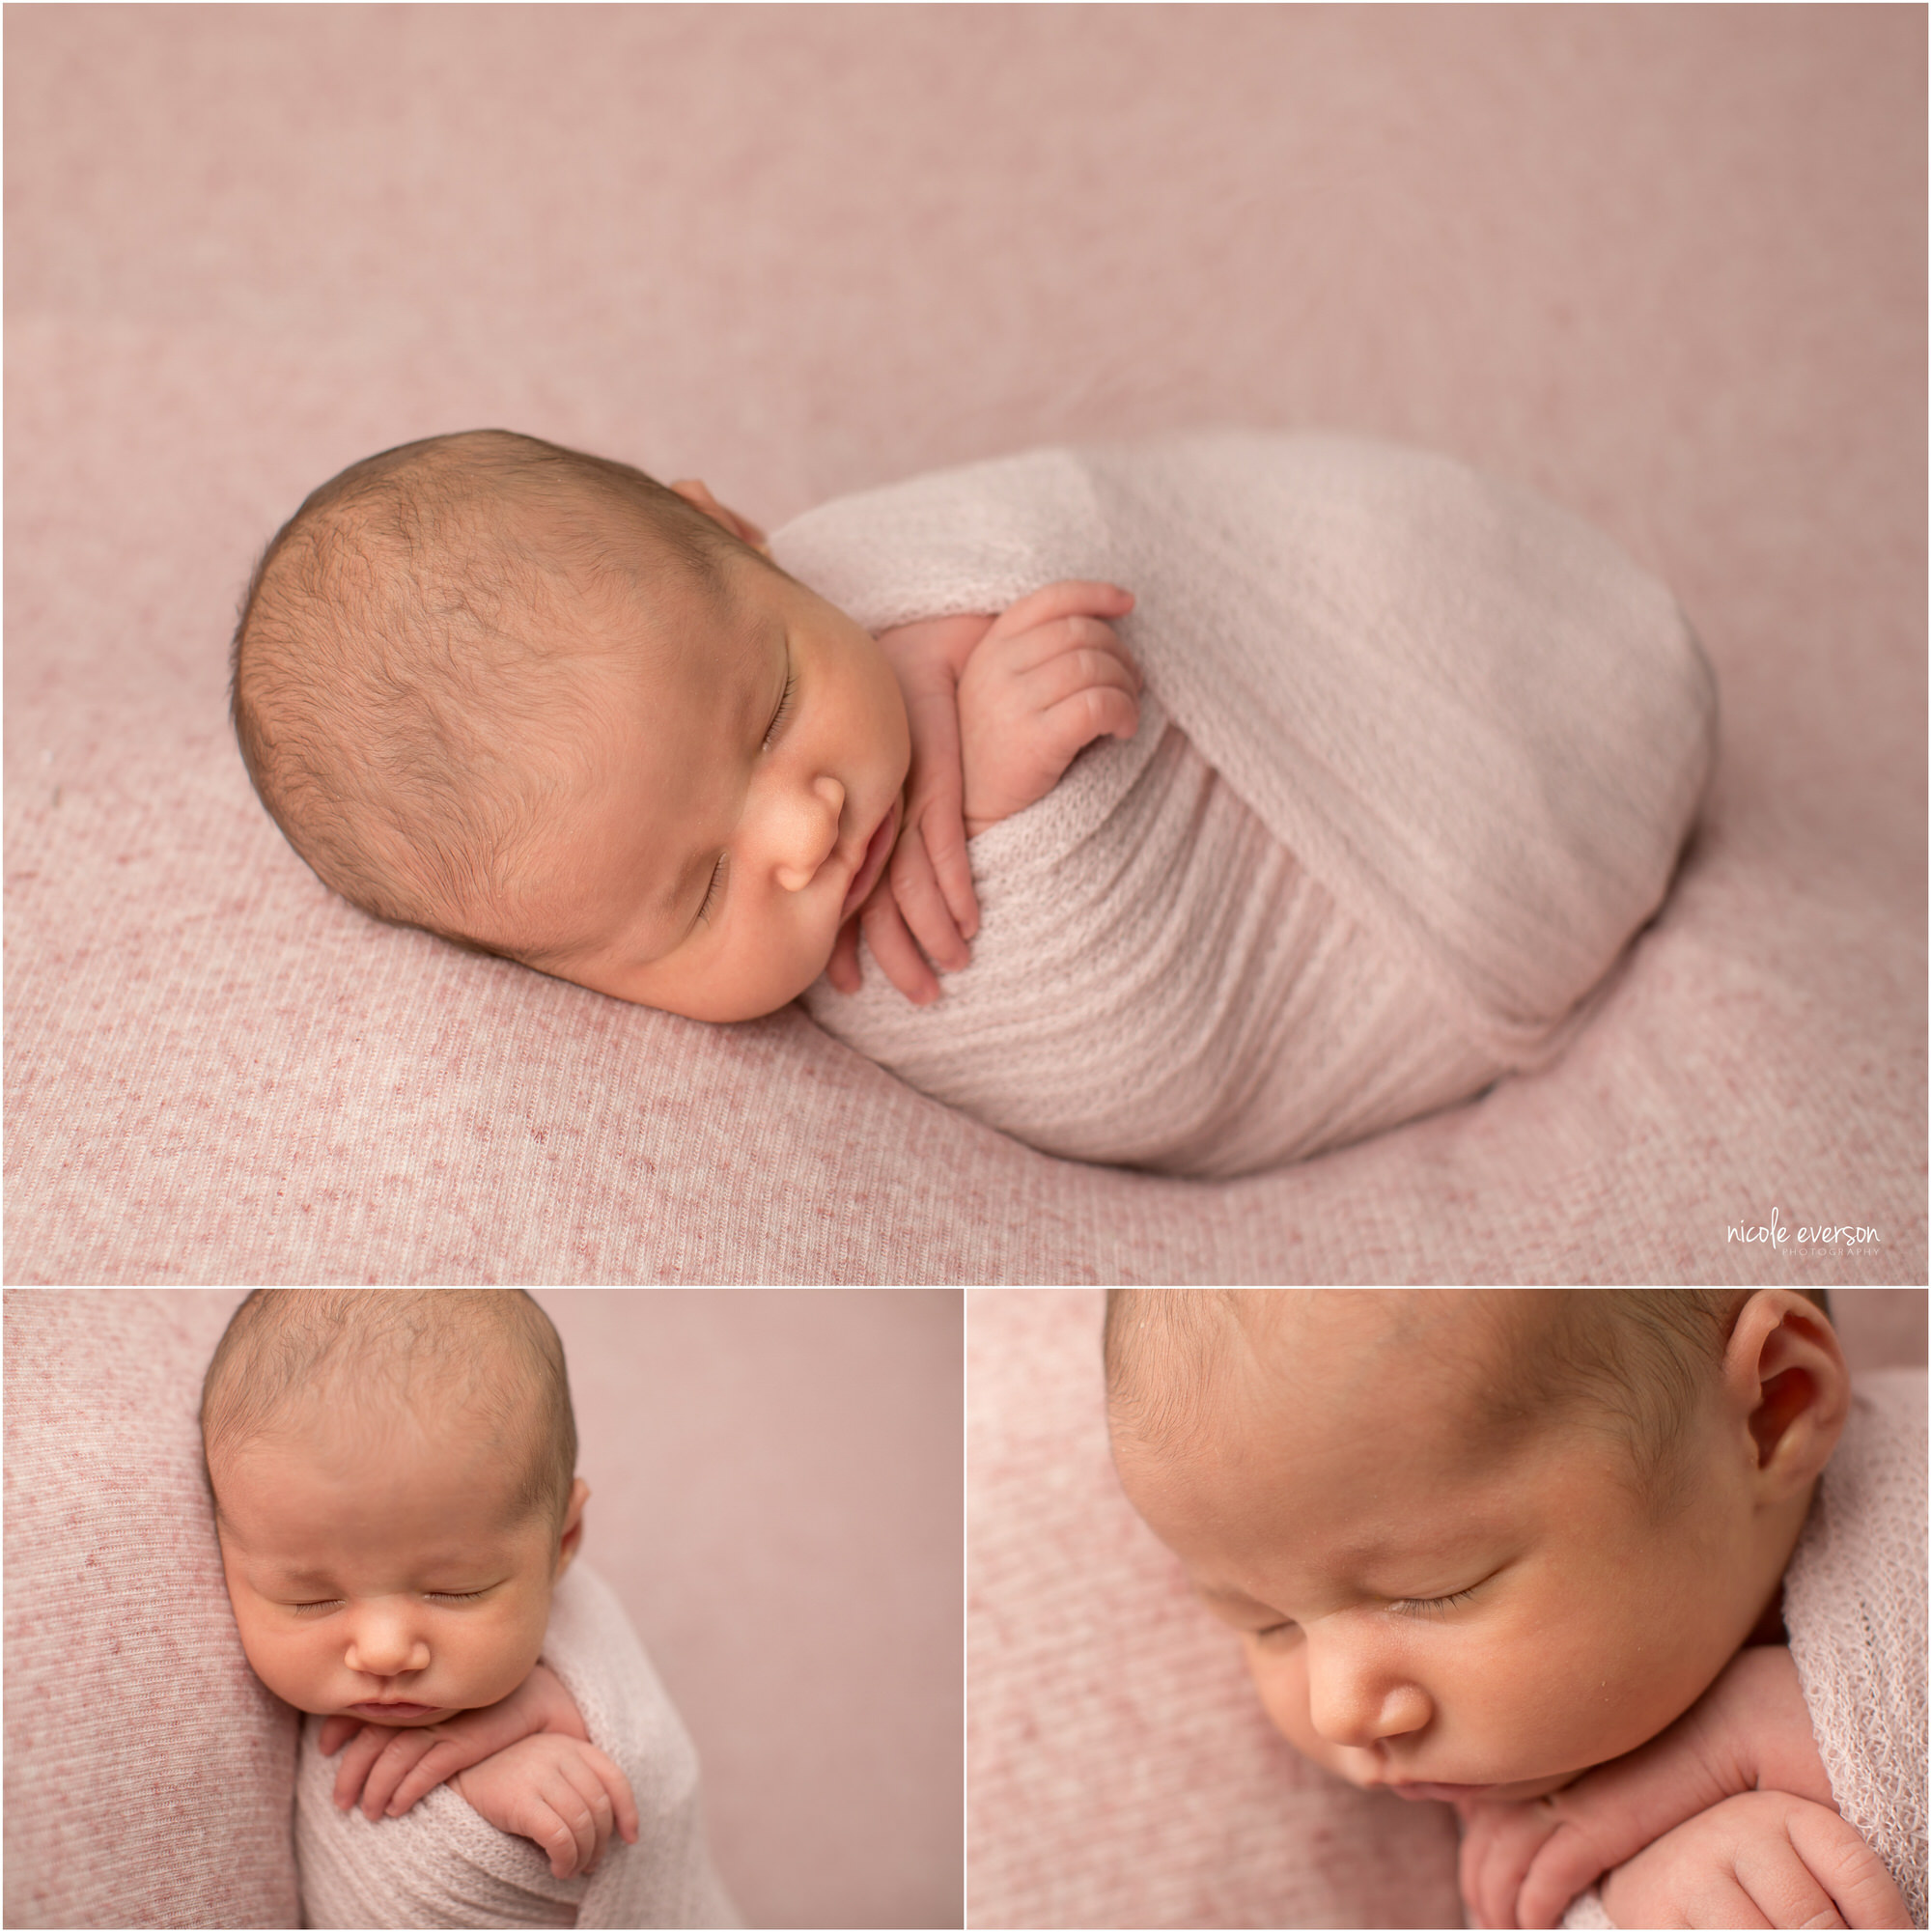 Destin Newborn Photos of a newborn baby girl swaddled in a soft pink blanket.